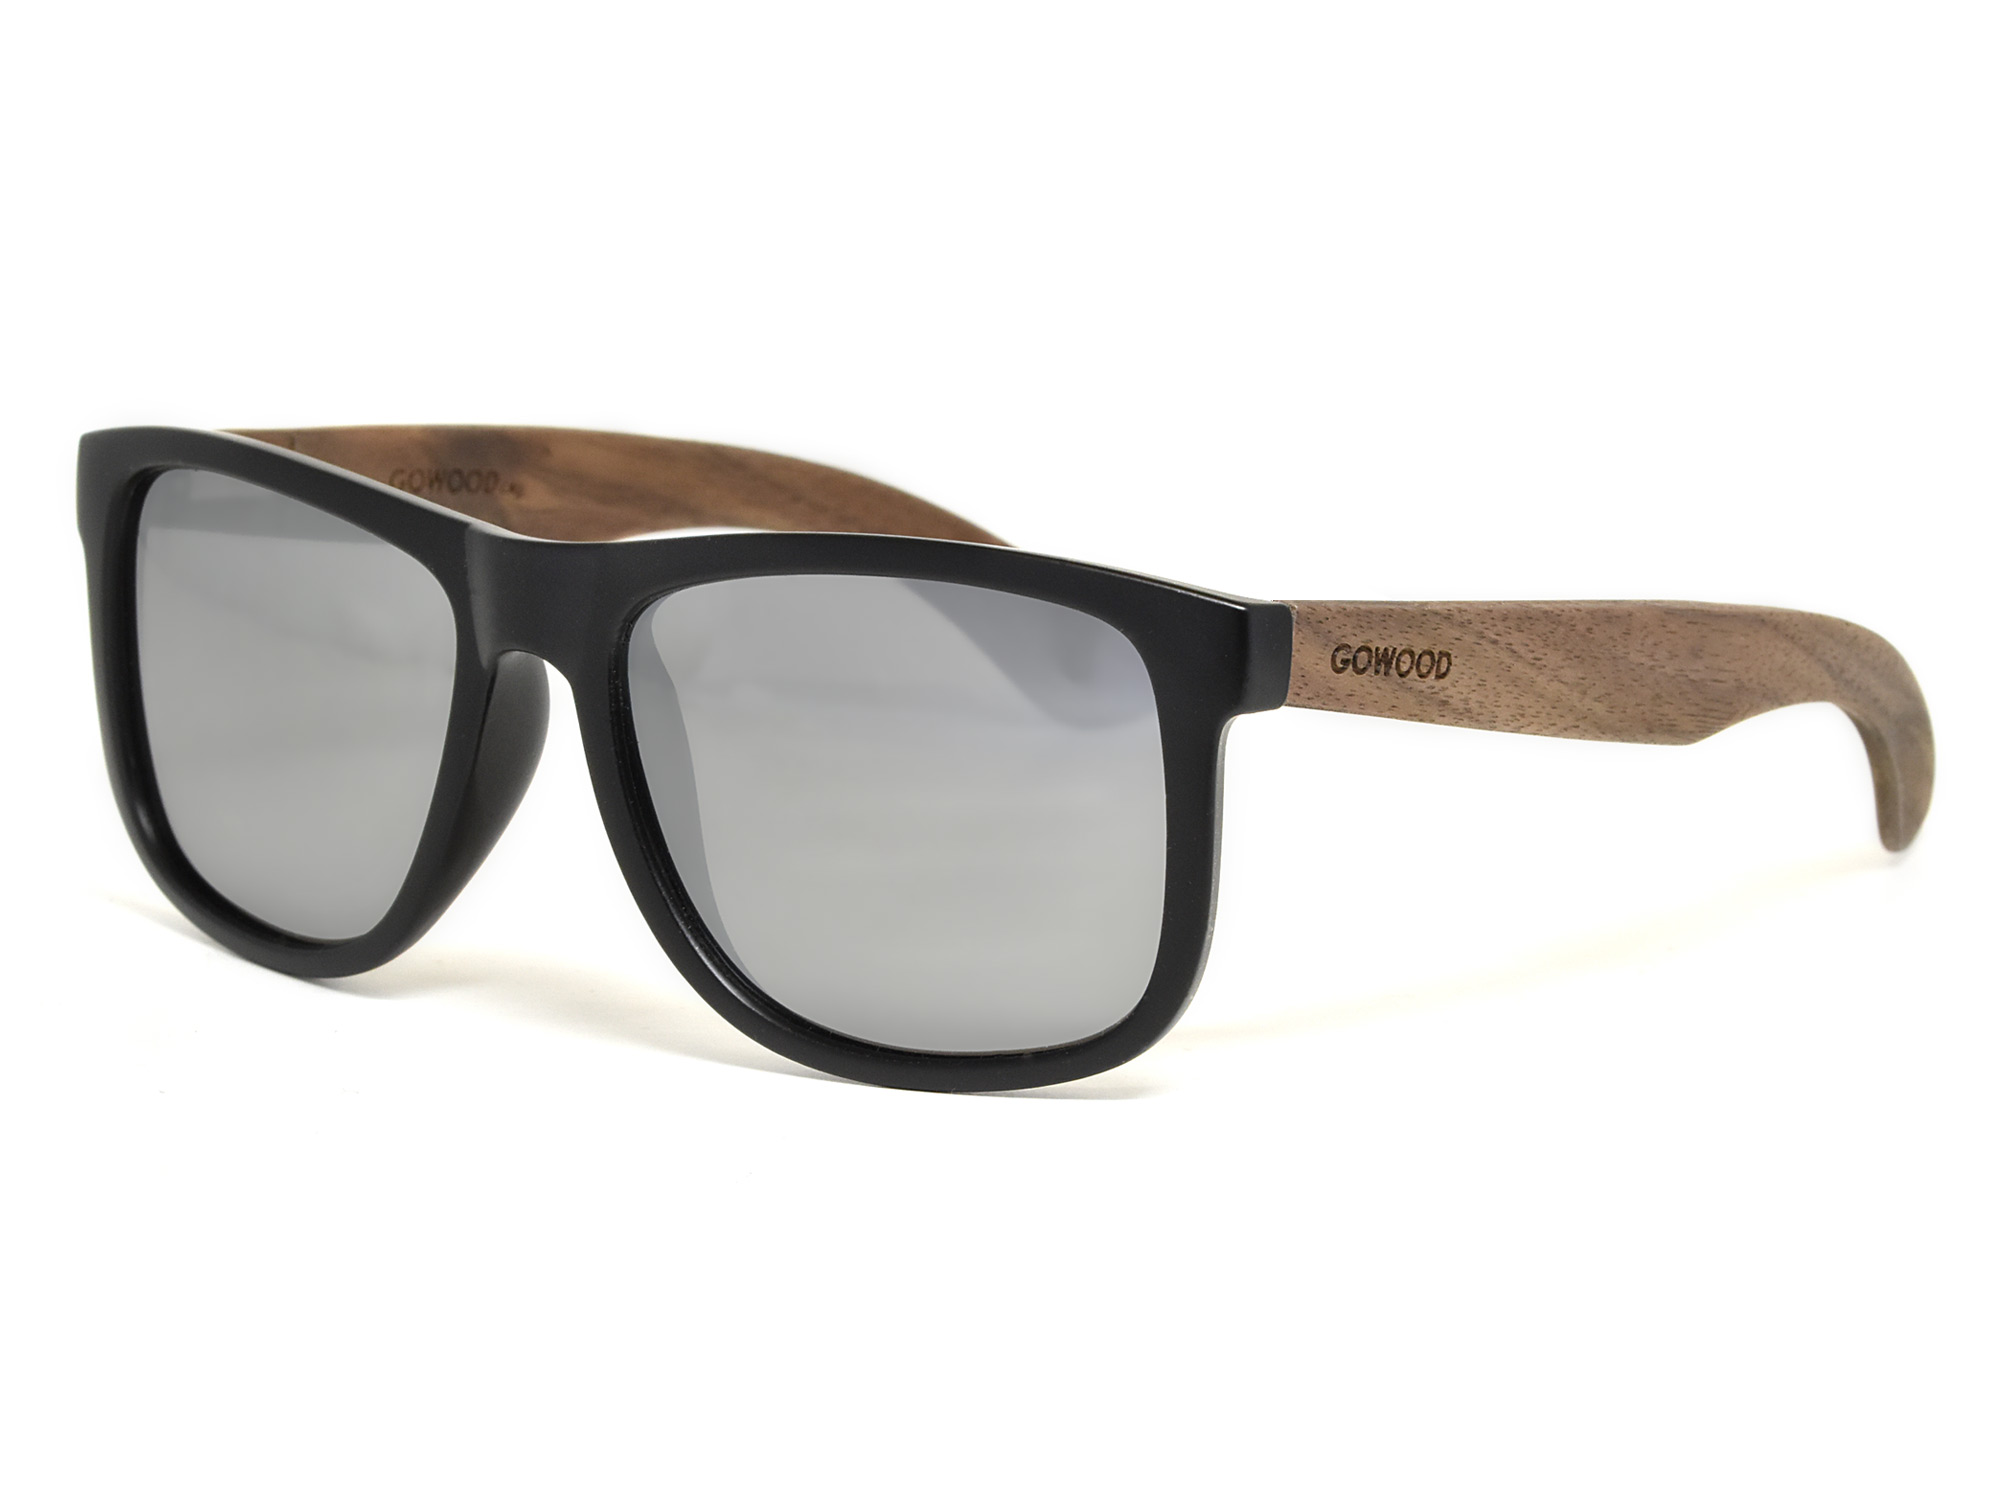 Square walnut wood sunglasses with silver mirrored polarized lenses